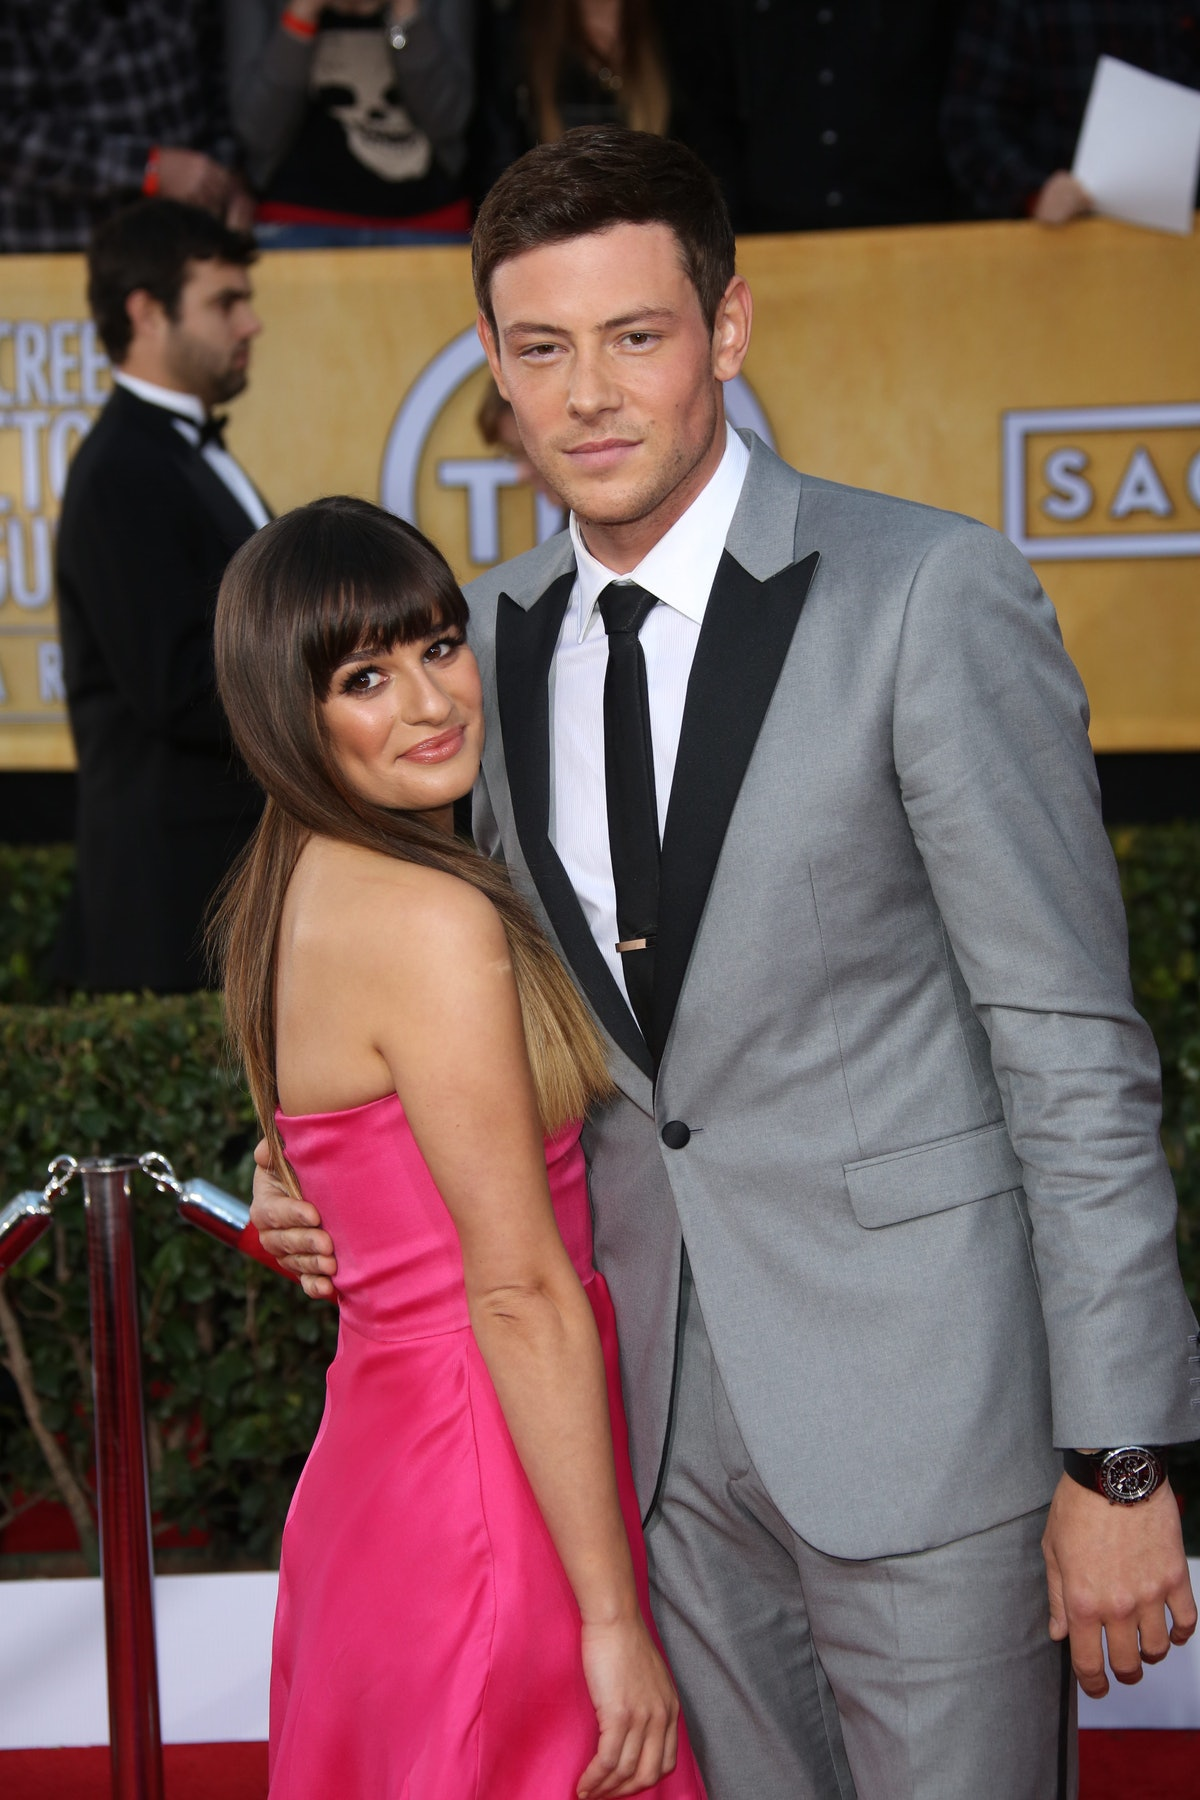 Lea Michele paid tribute to Cory Monteith on the eighth anniversary of his death.